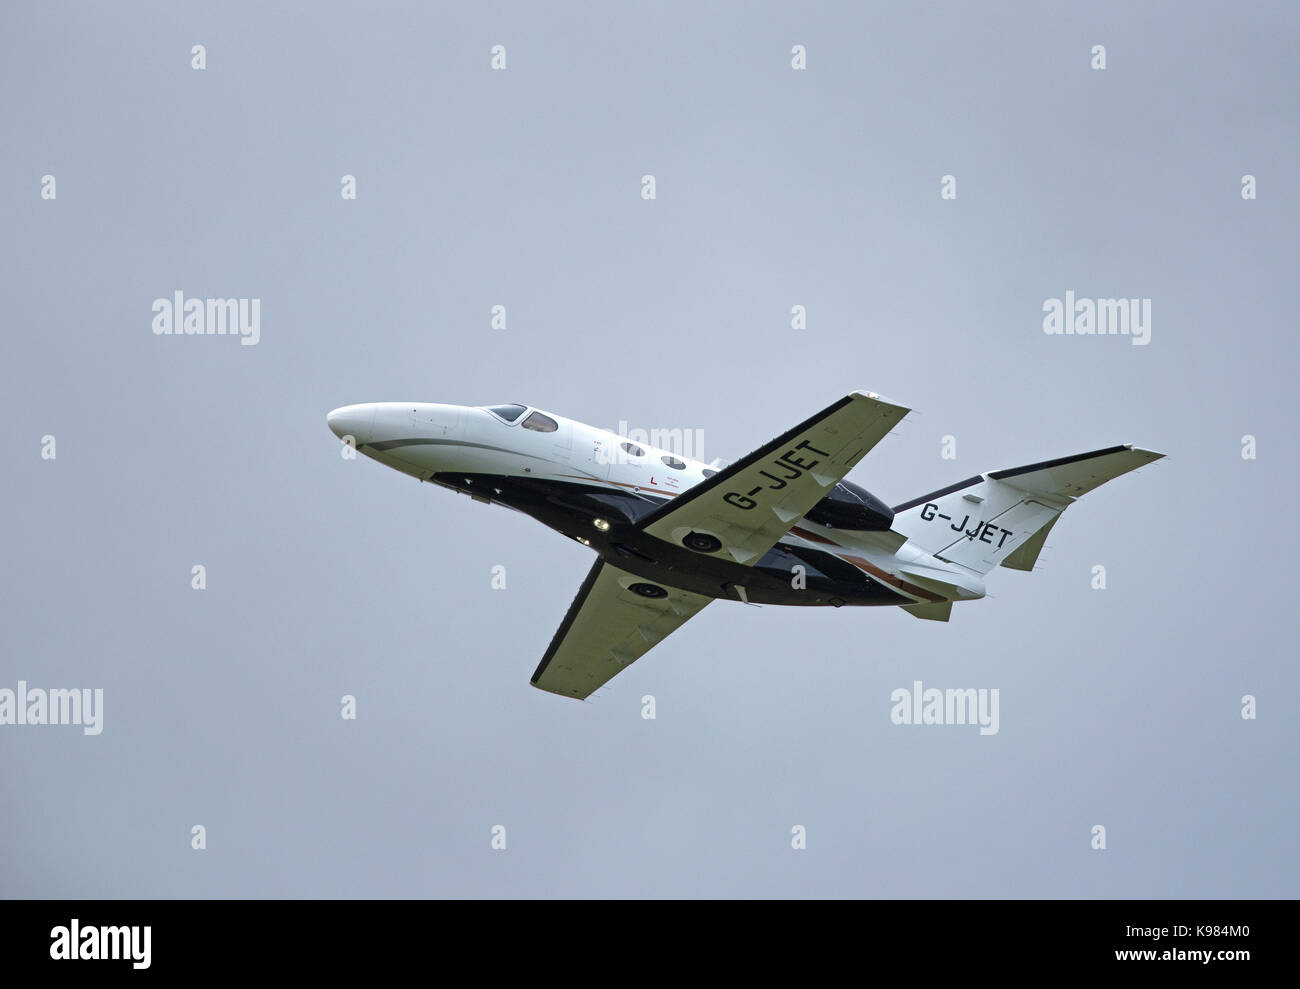 A Cessna Mustang on Charter departs Inverness Dalcross airport en-route to the USA. - Stock Image